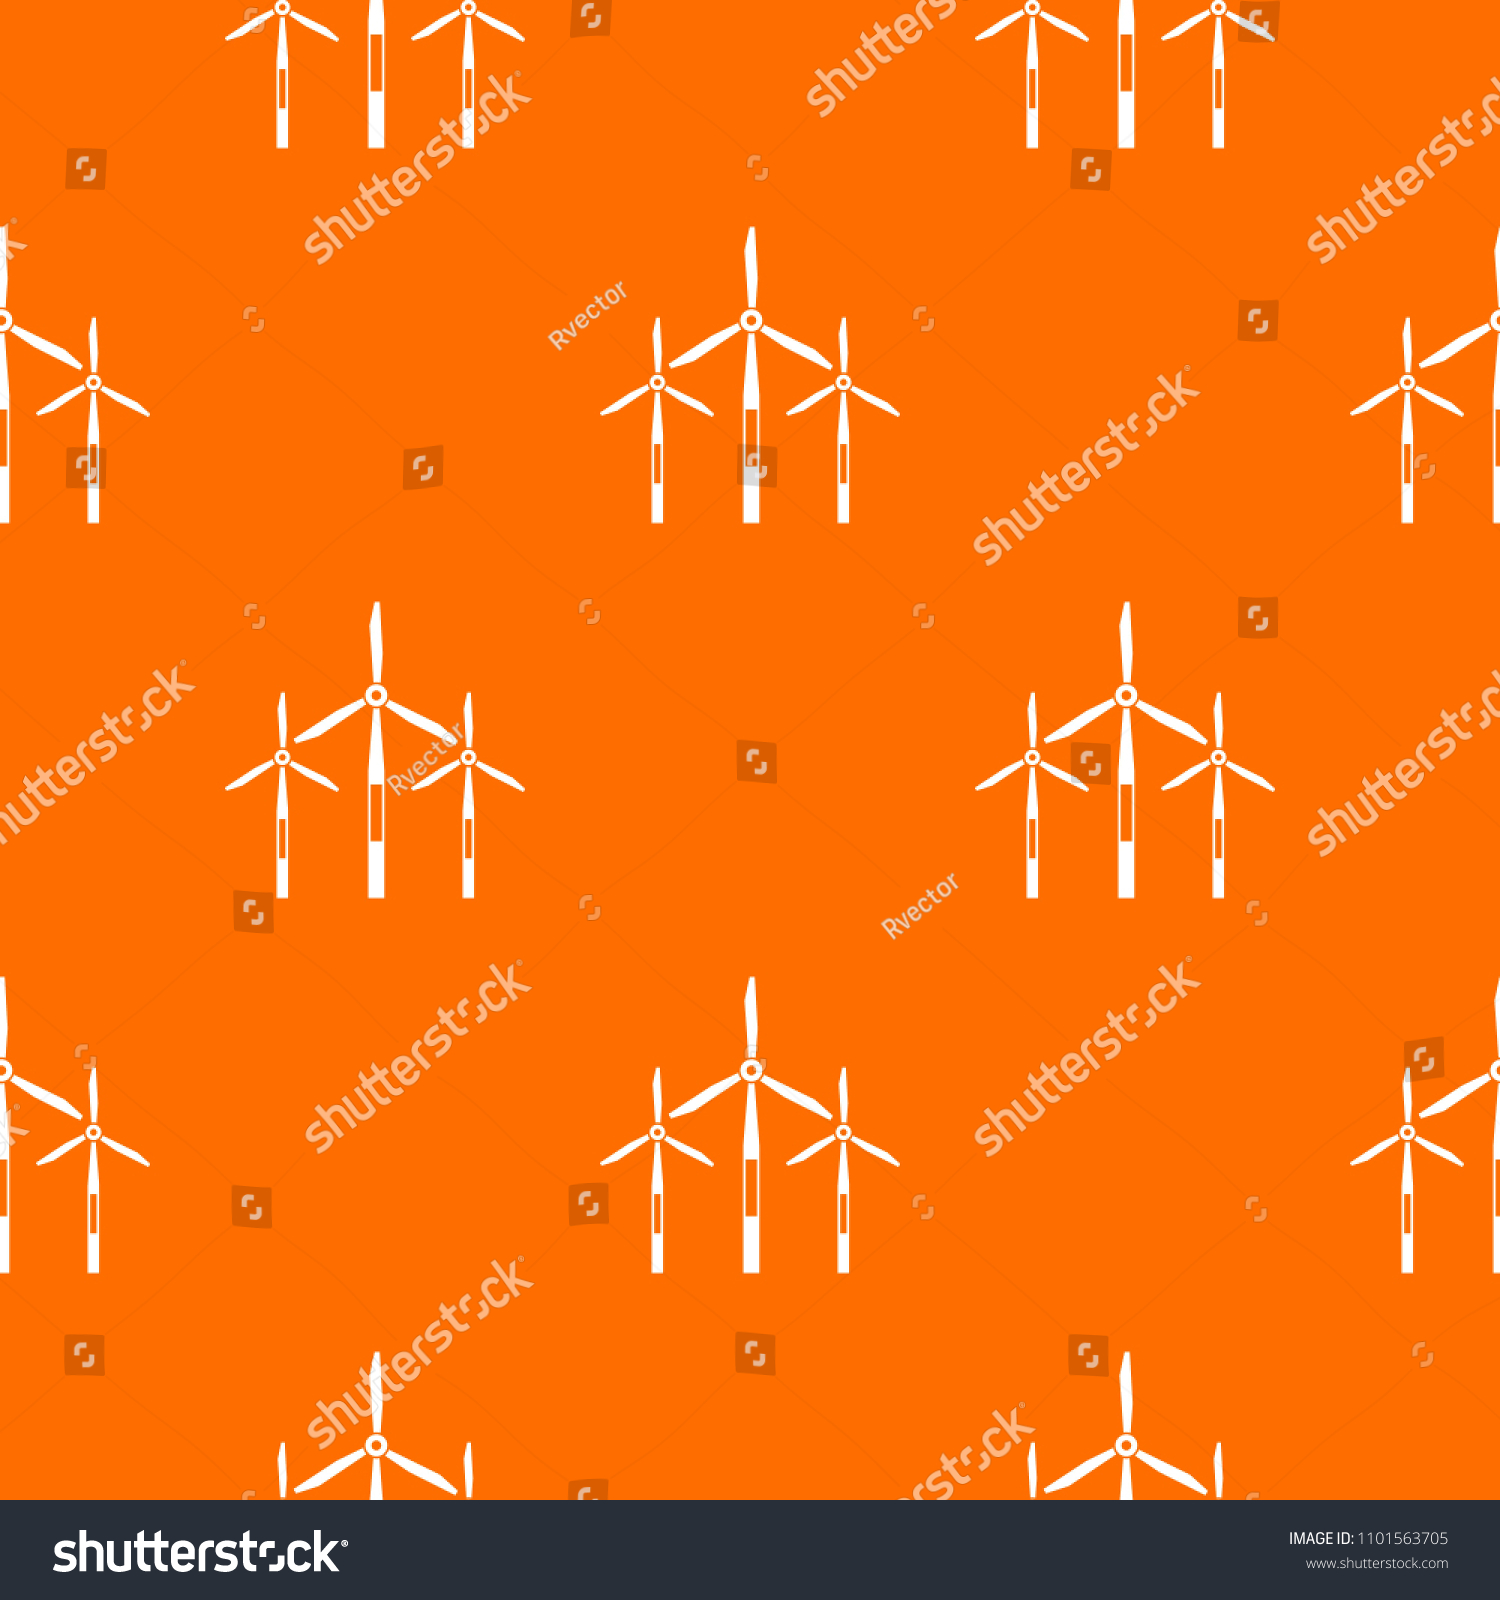 Wind Generator Turbines Pattern Repeat Seamless Stock